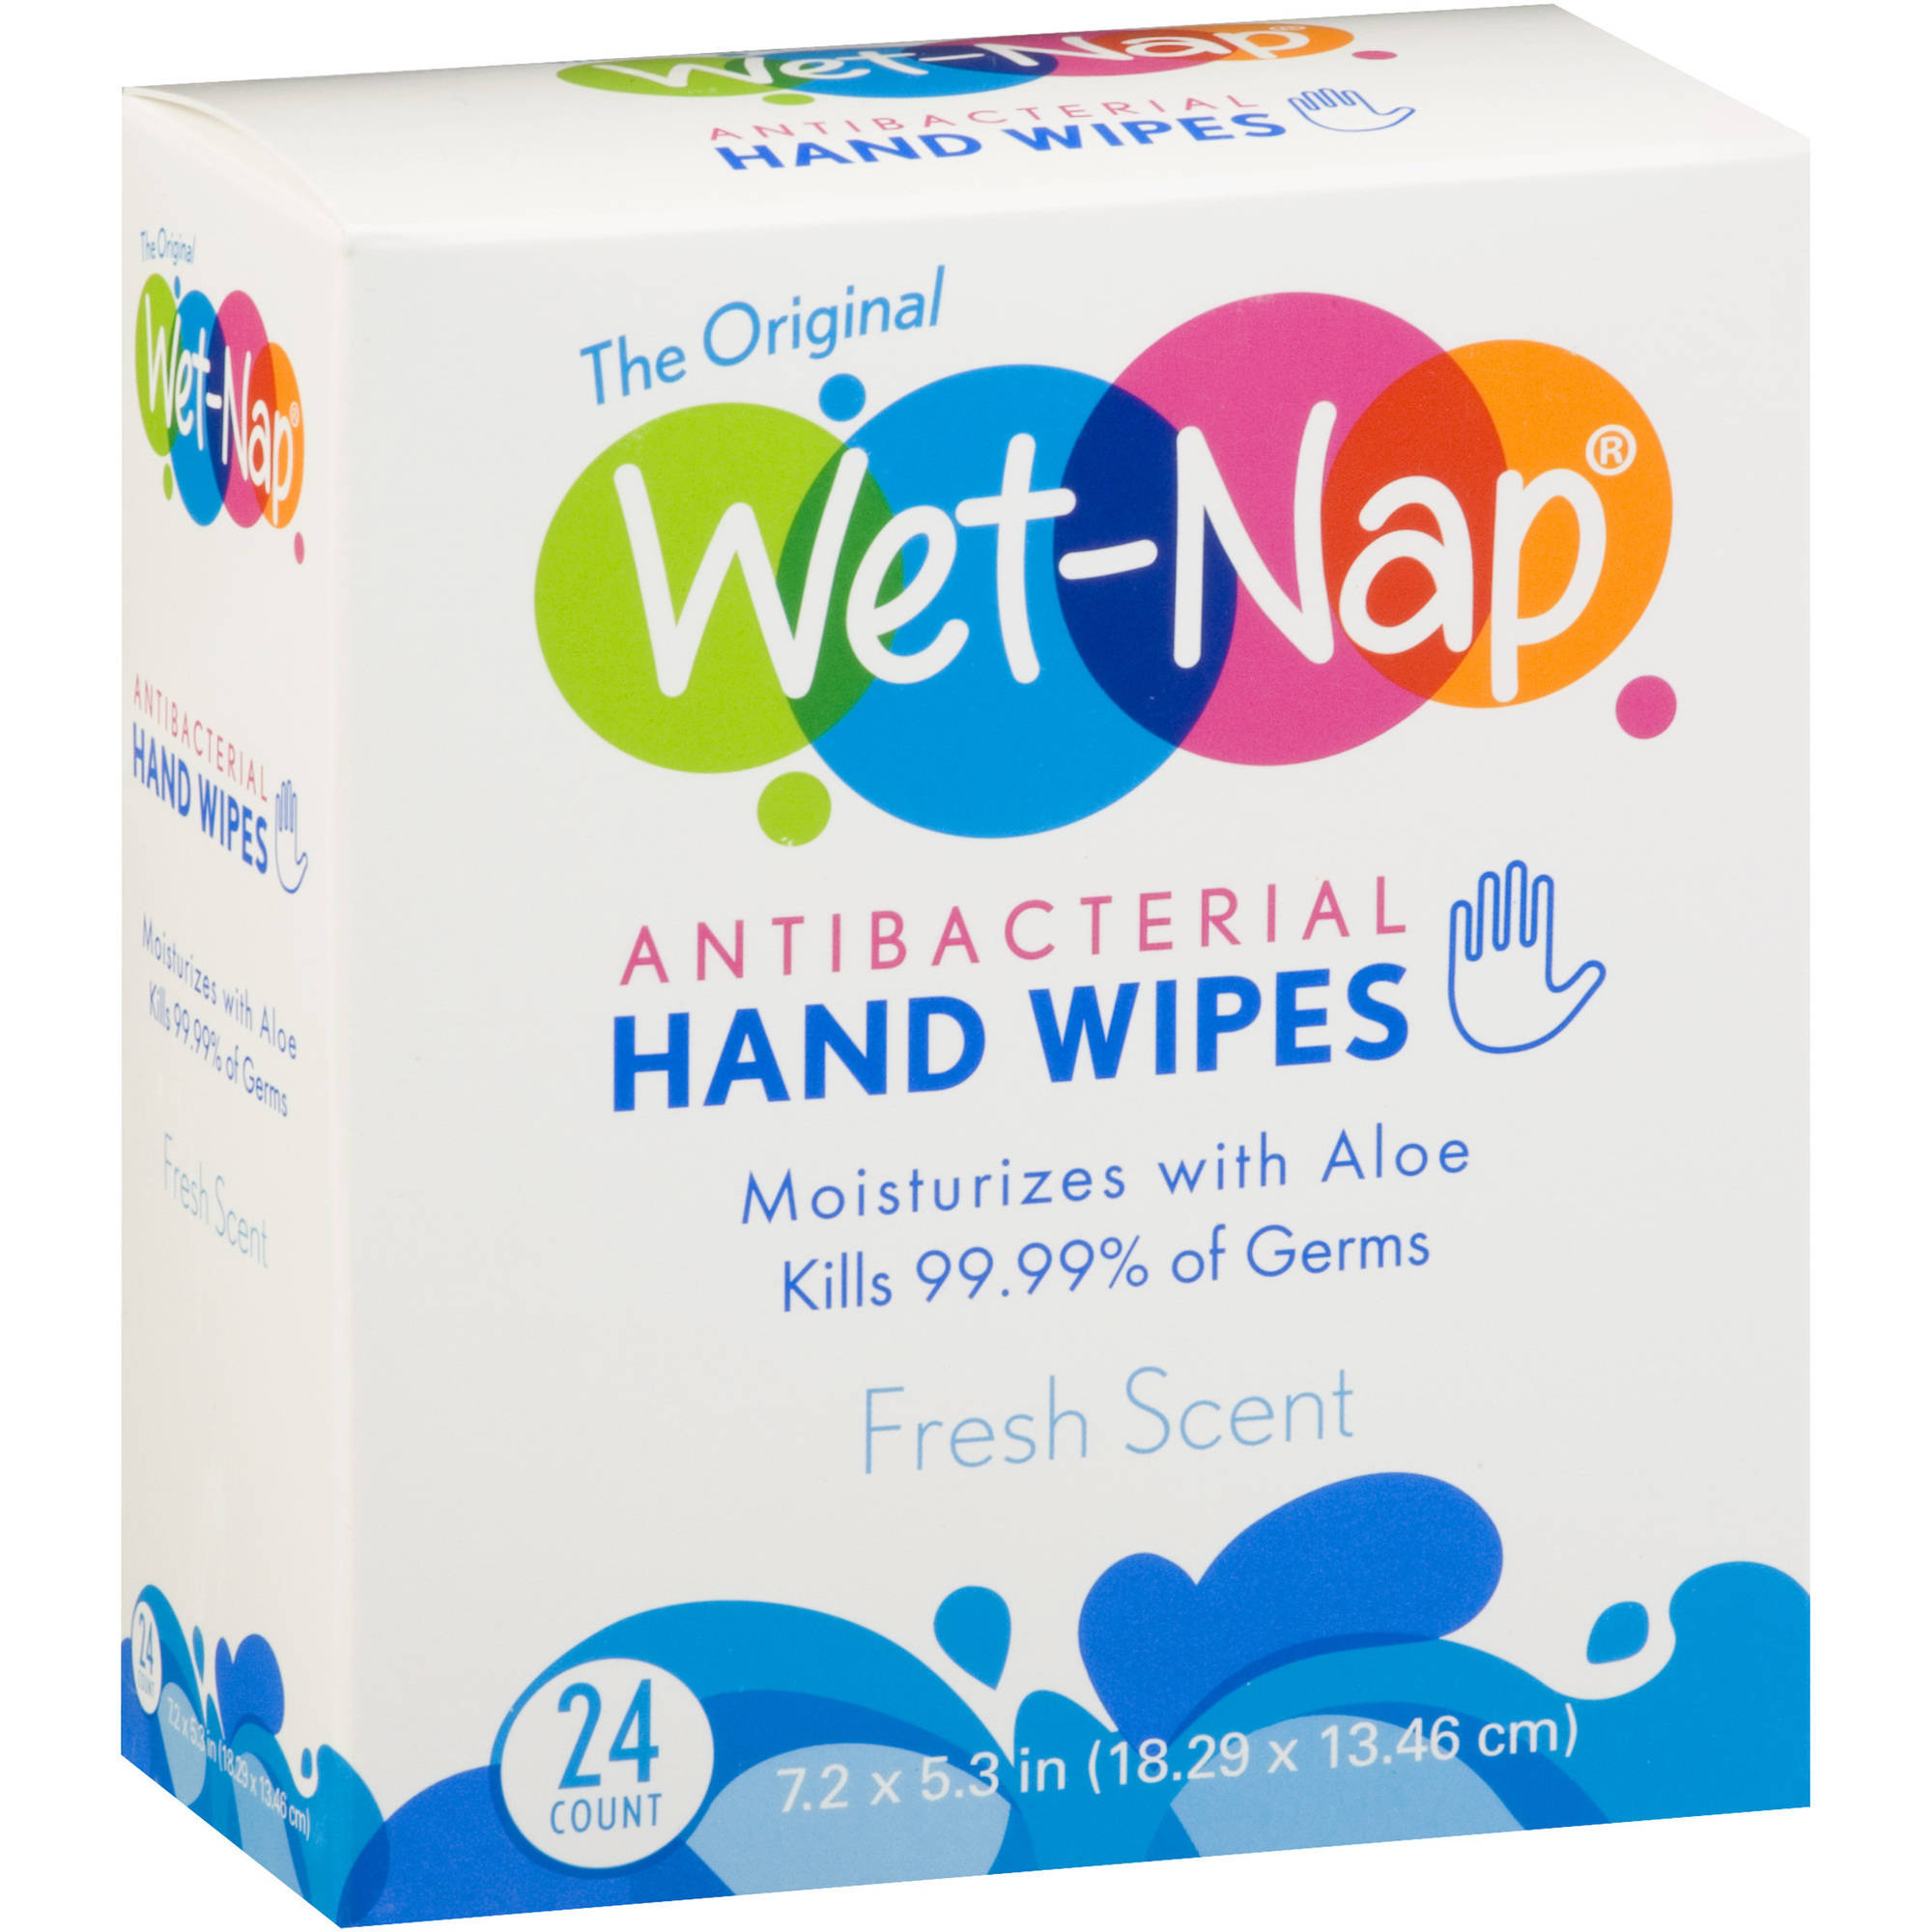 Wet-Nap Antibacterial Hand Wipes, 24 sheets